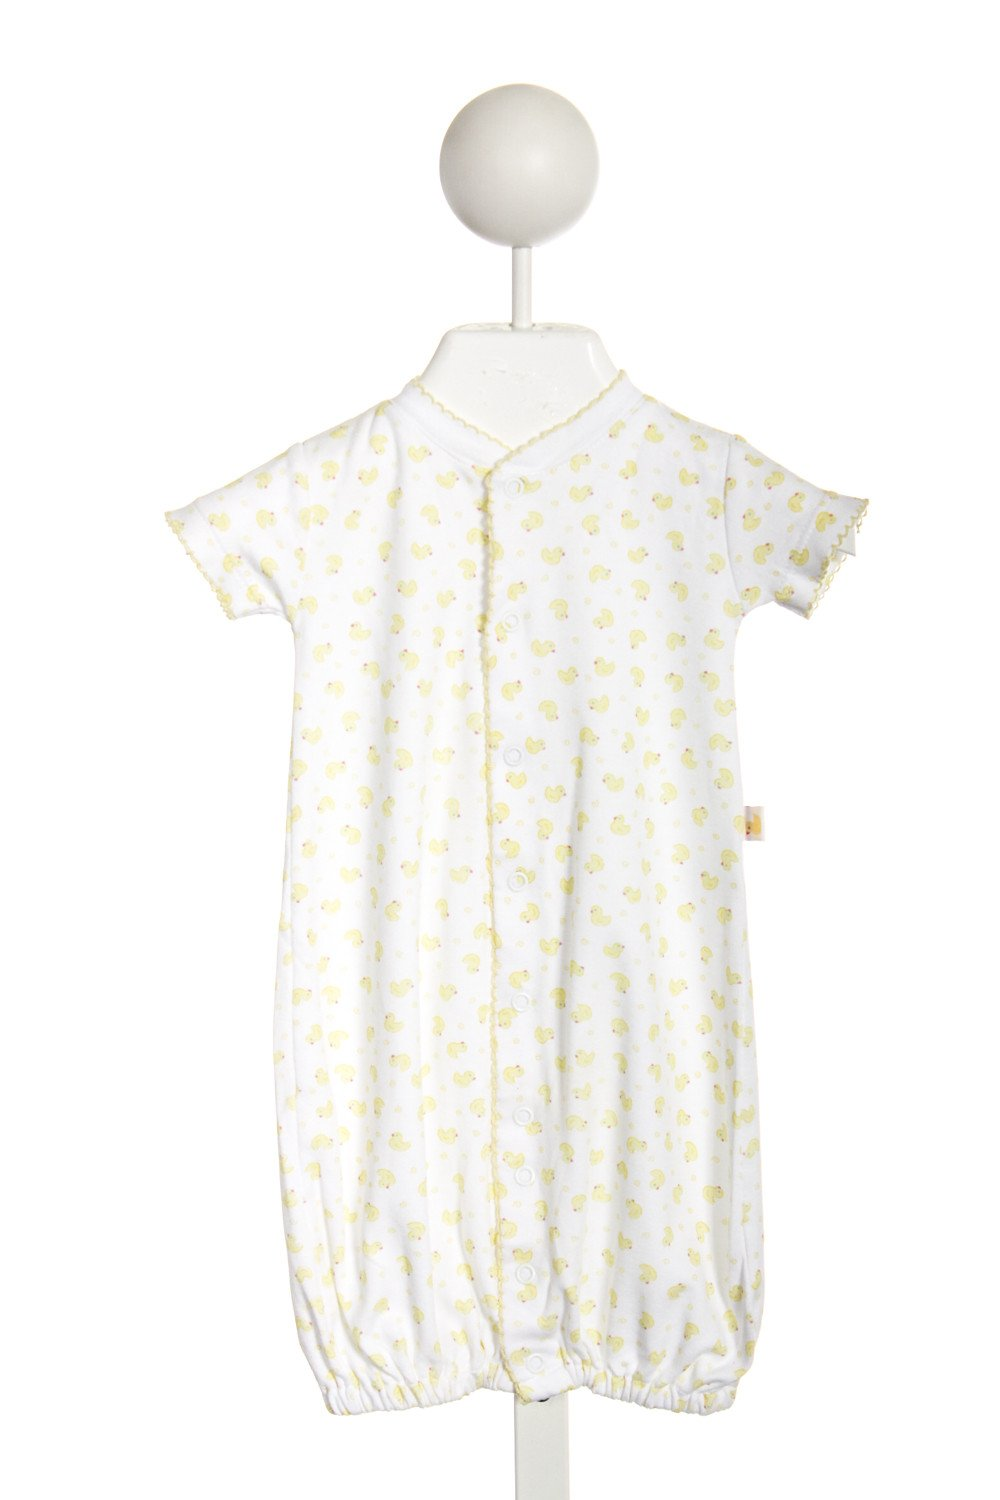 KISSY KISSY YELLOW BABY DUCKS CONVERTIBLE GOWN